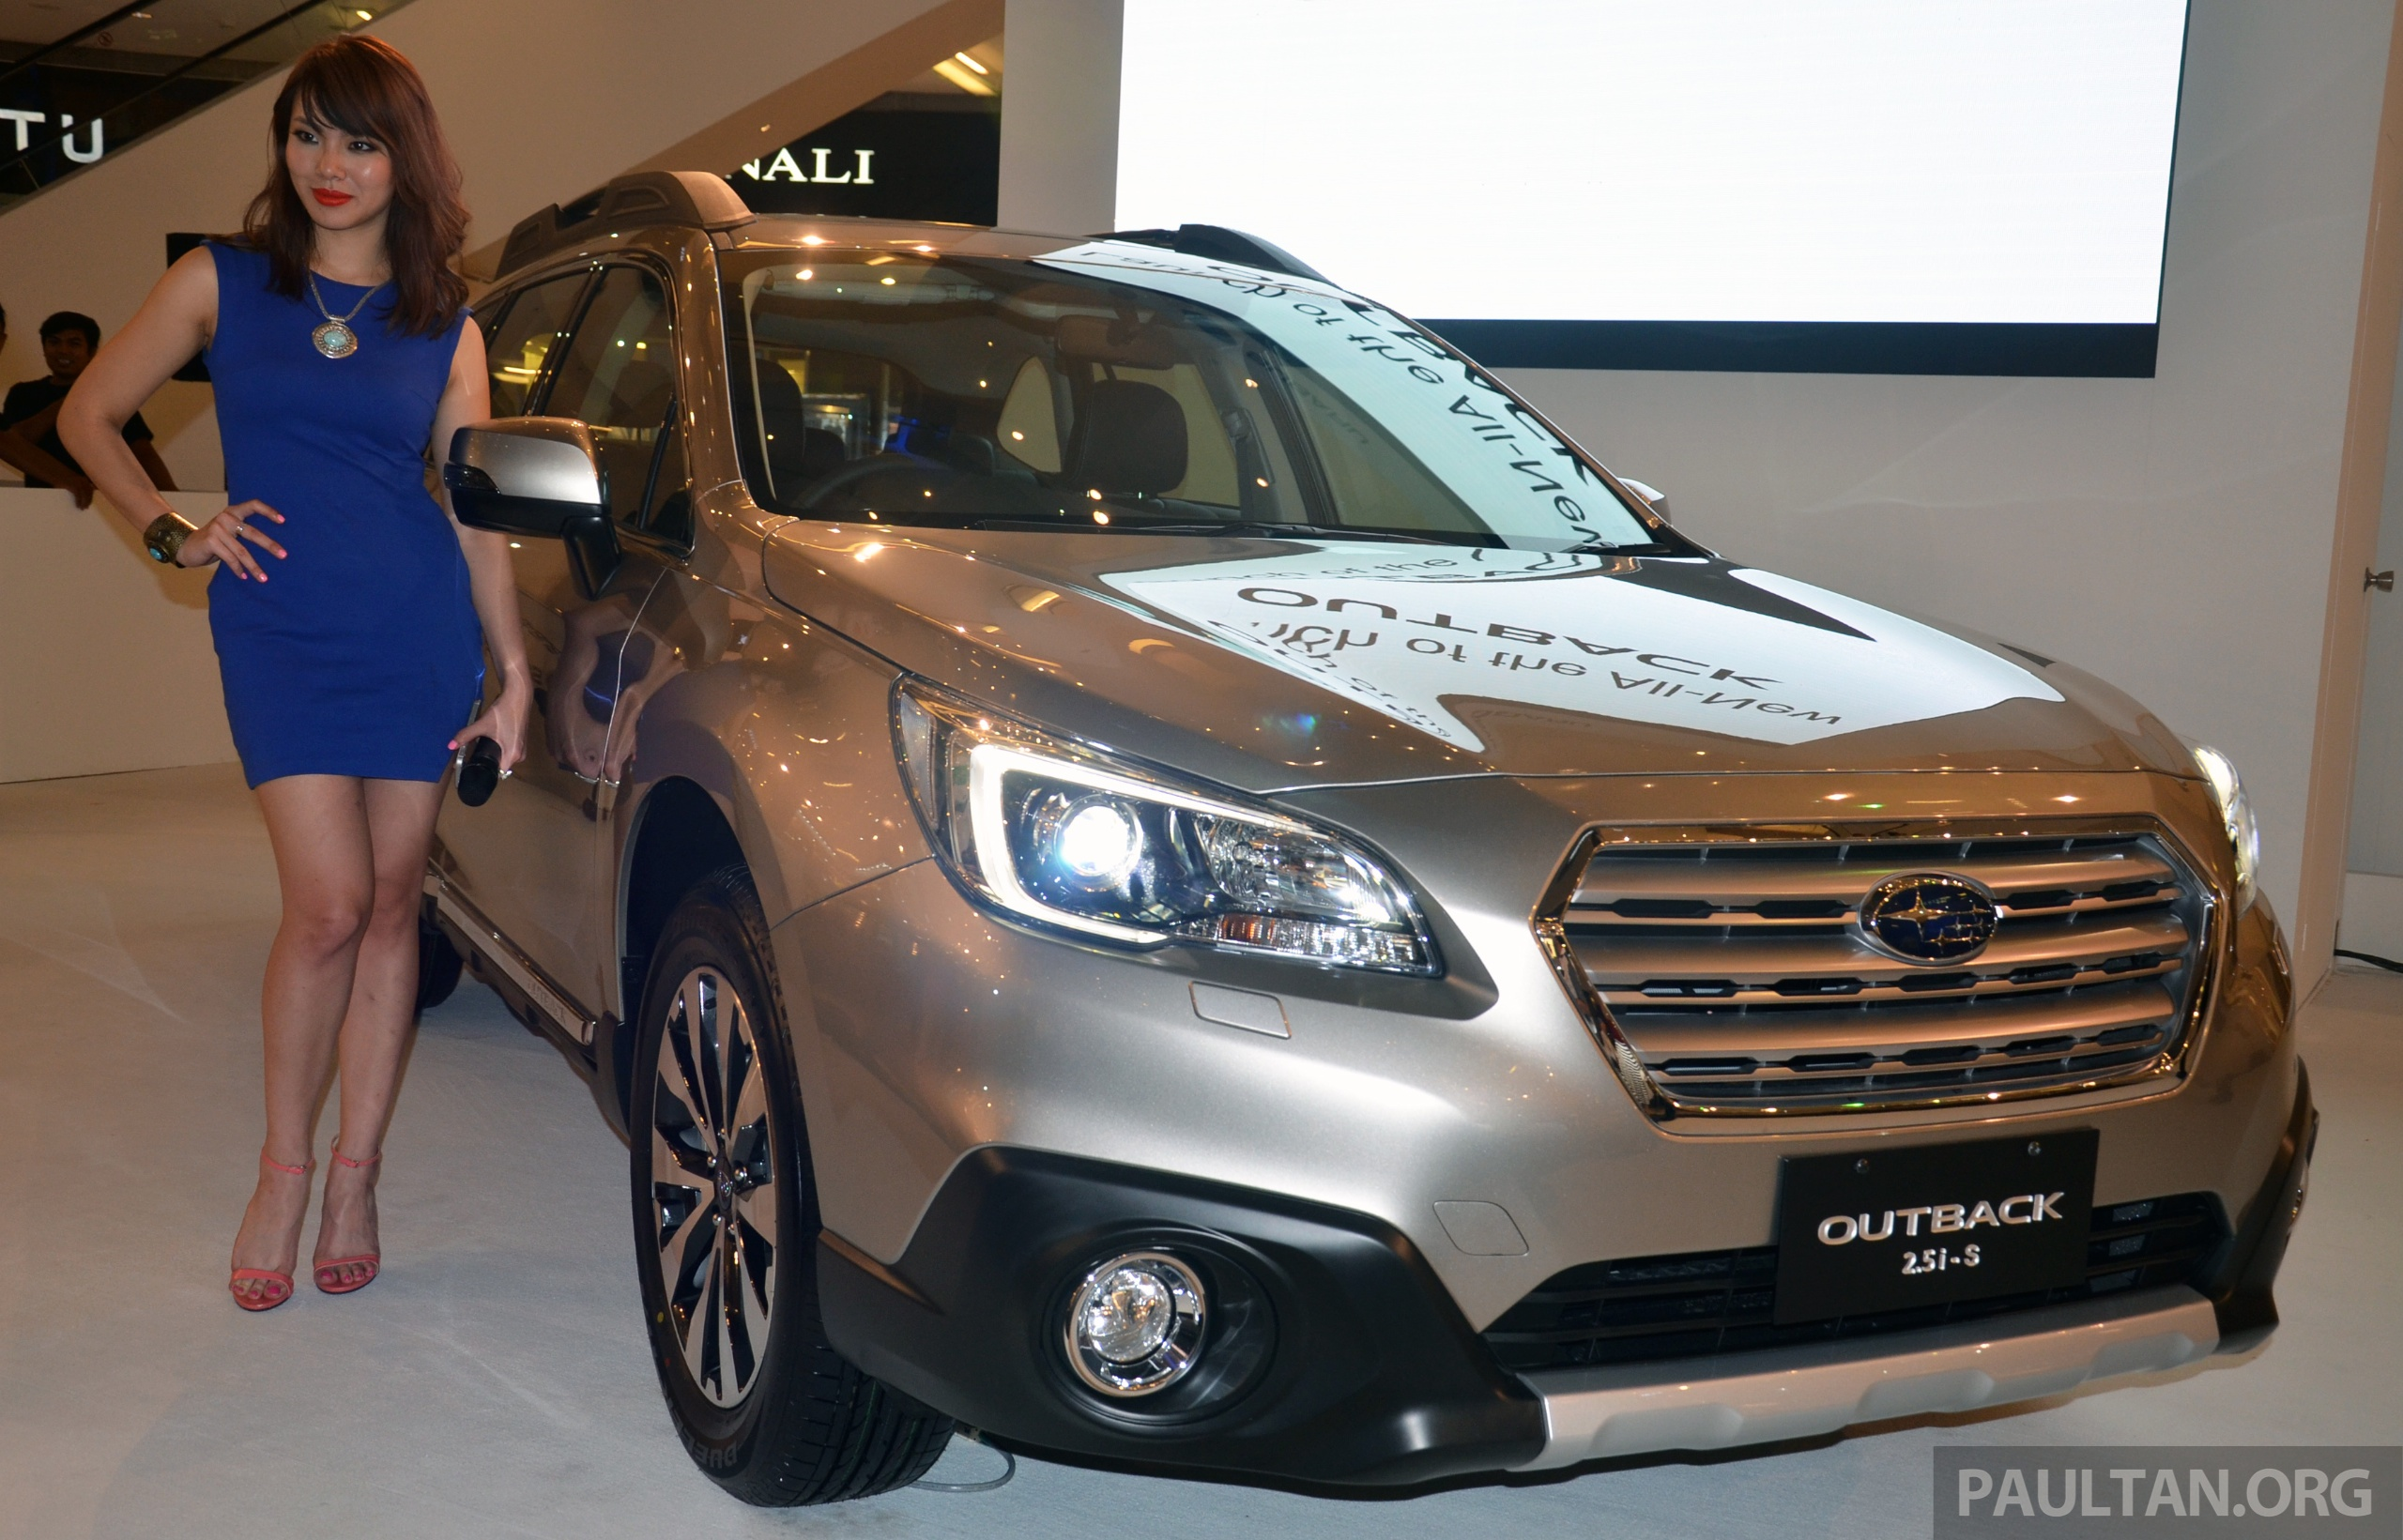 2015 Subaru Outback 2.5i-S launched in Msia: RM225k Paul Tan - Image 334191